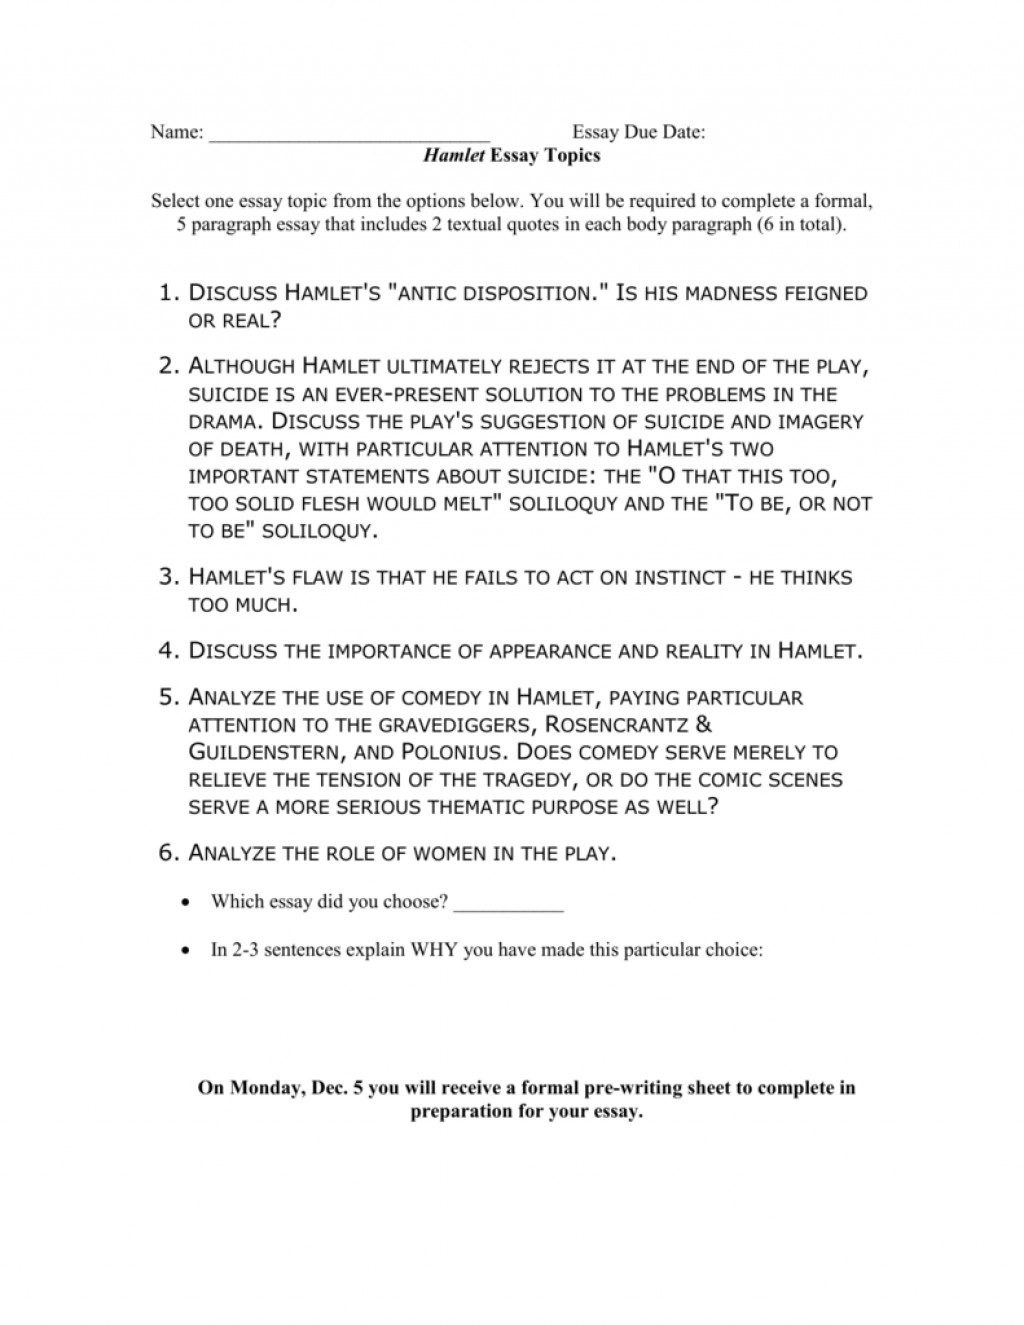 010 Hamlet Madness Essay Example 008023648 1 Stupendous Outline Theme Large